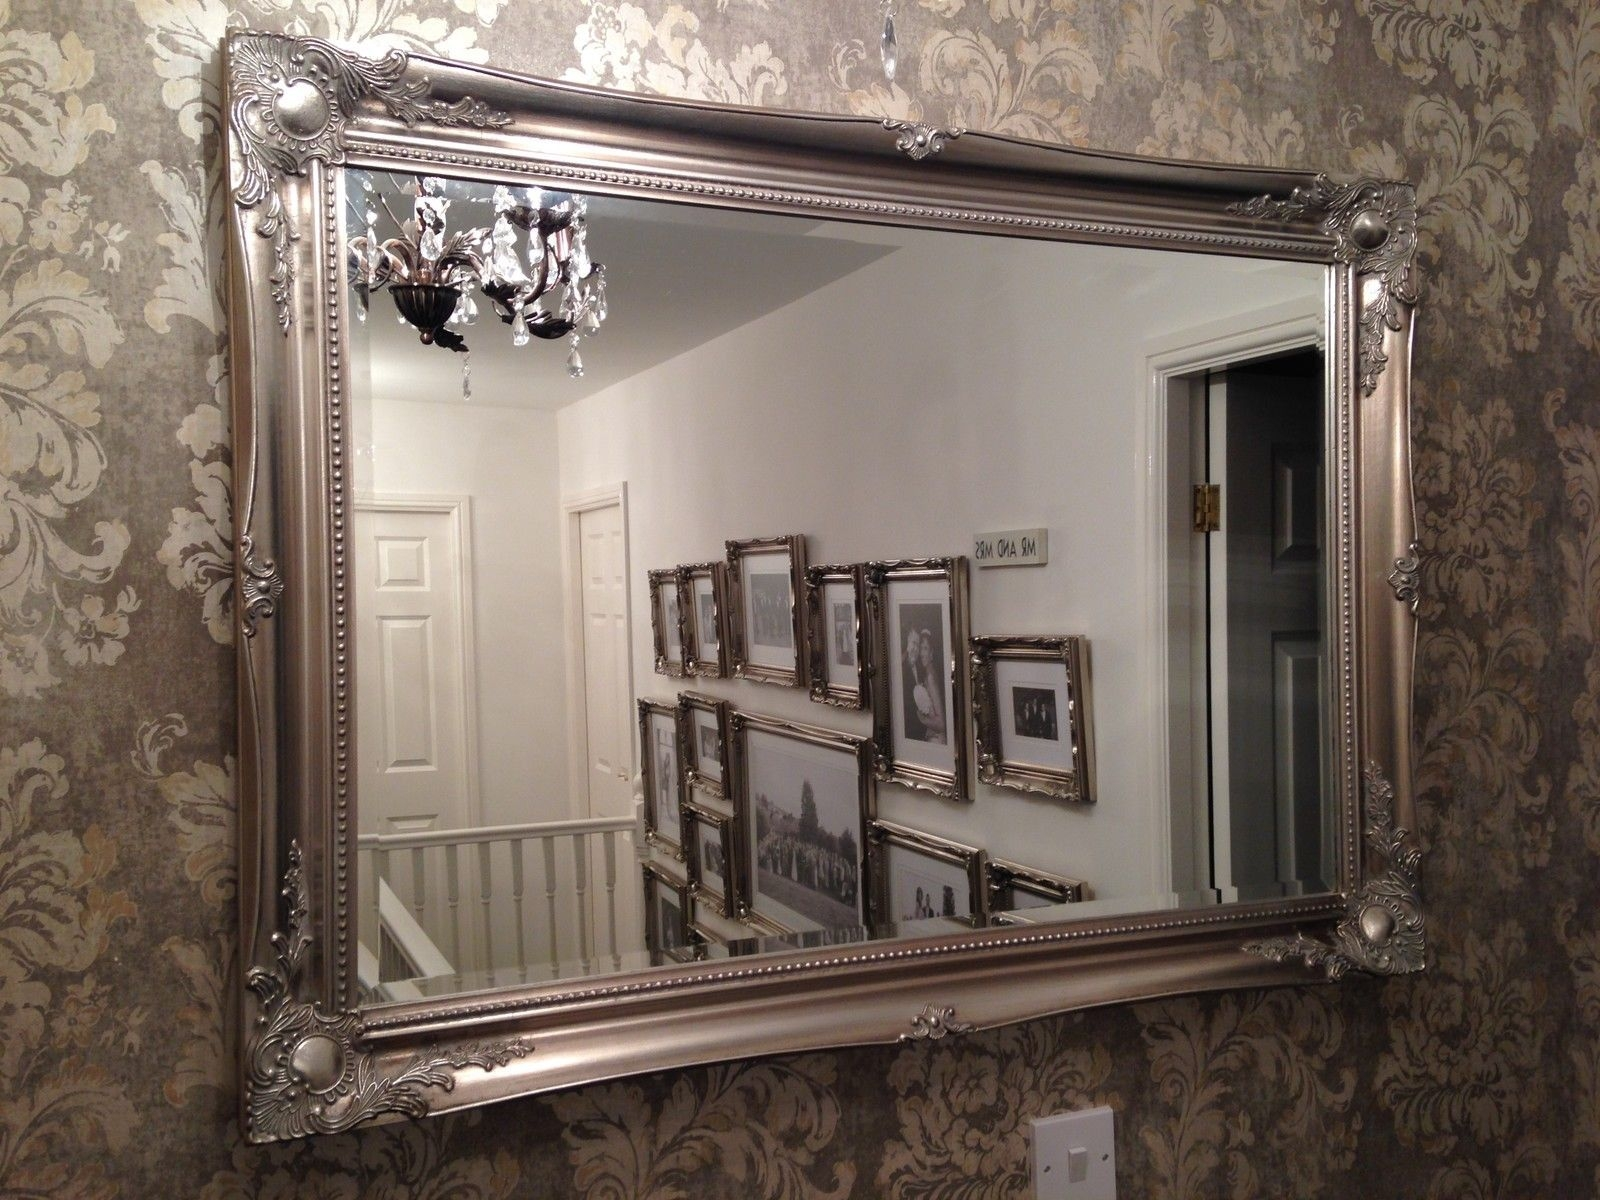 X Large Antique Silver Shab Chic Ornate Decorative Wall Mirror Regarding Large Antiqued Mirror (View 15 of 15)